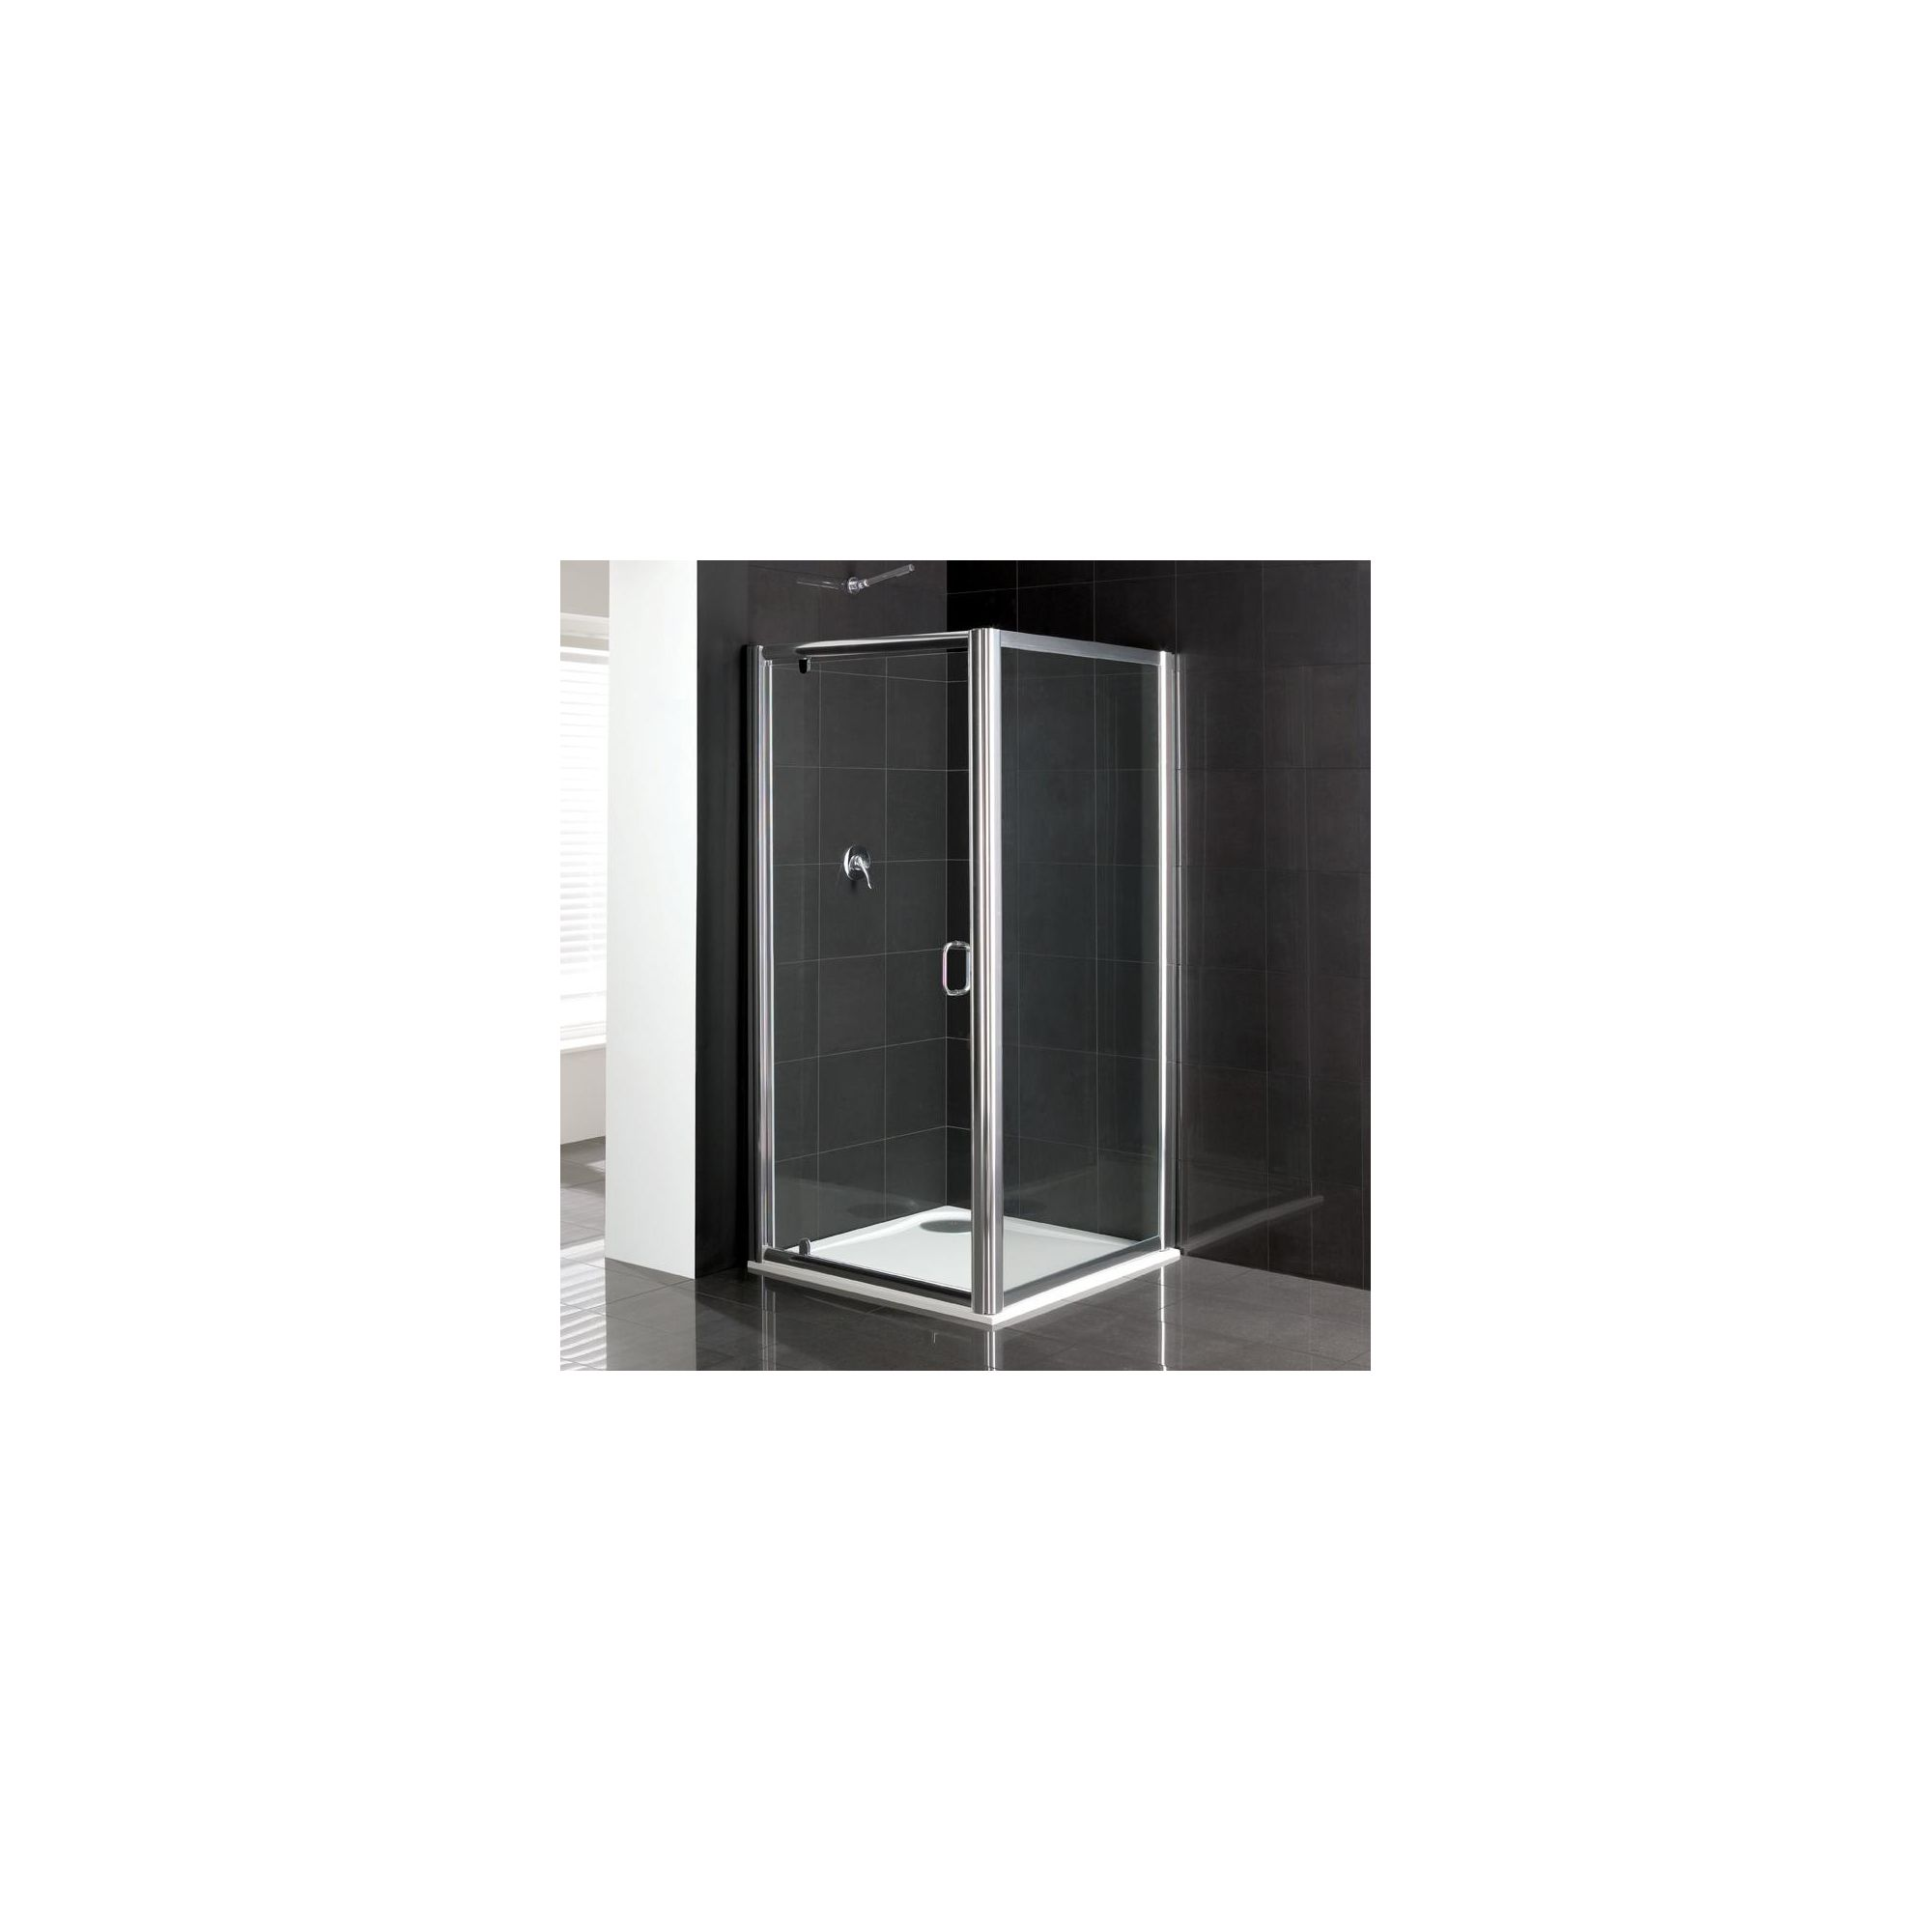 Duchy Elite Silver Pivot Door Shower Enclosure, 900mm x 760mm, Standard Tray, 6mm Glass at Tescos Direct